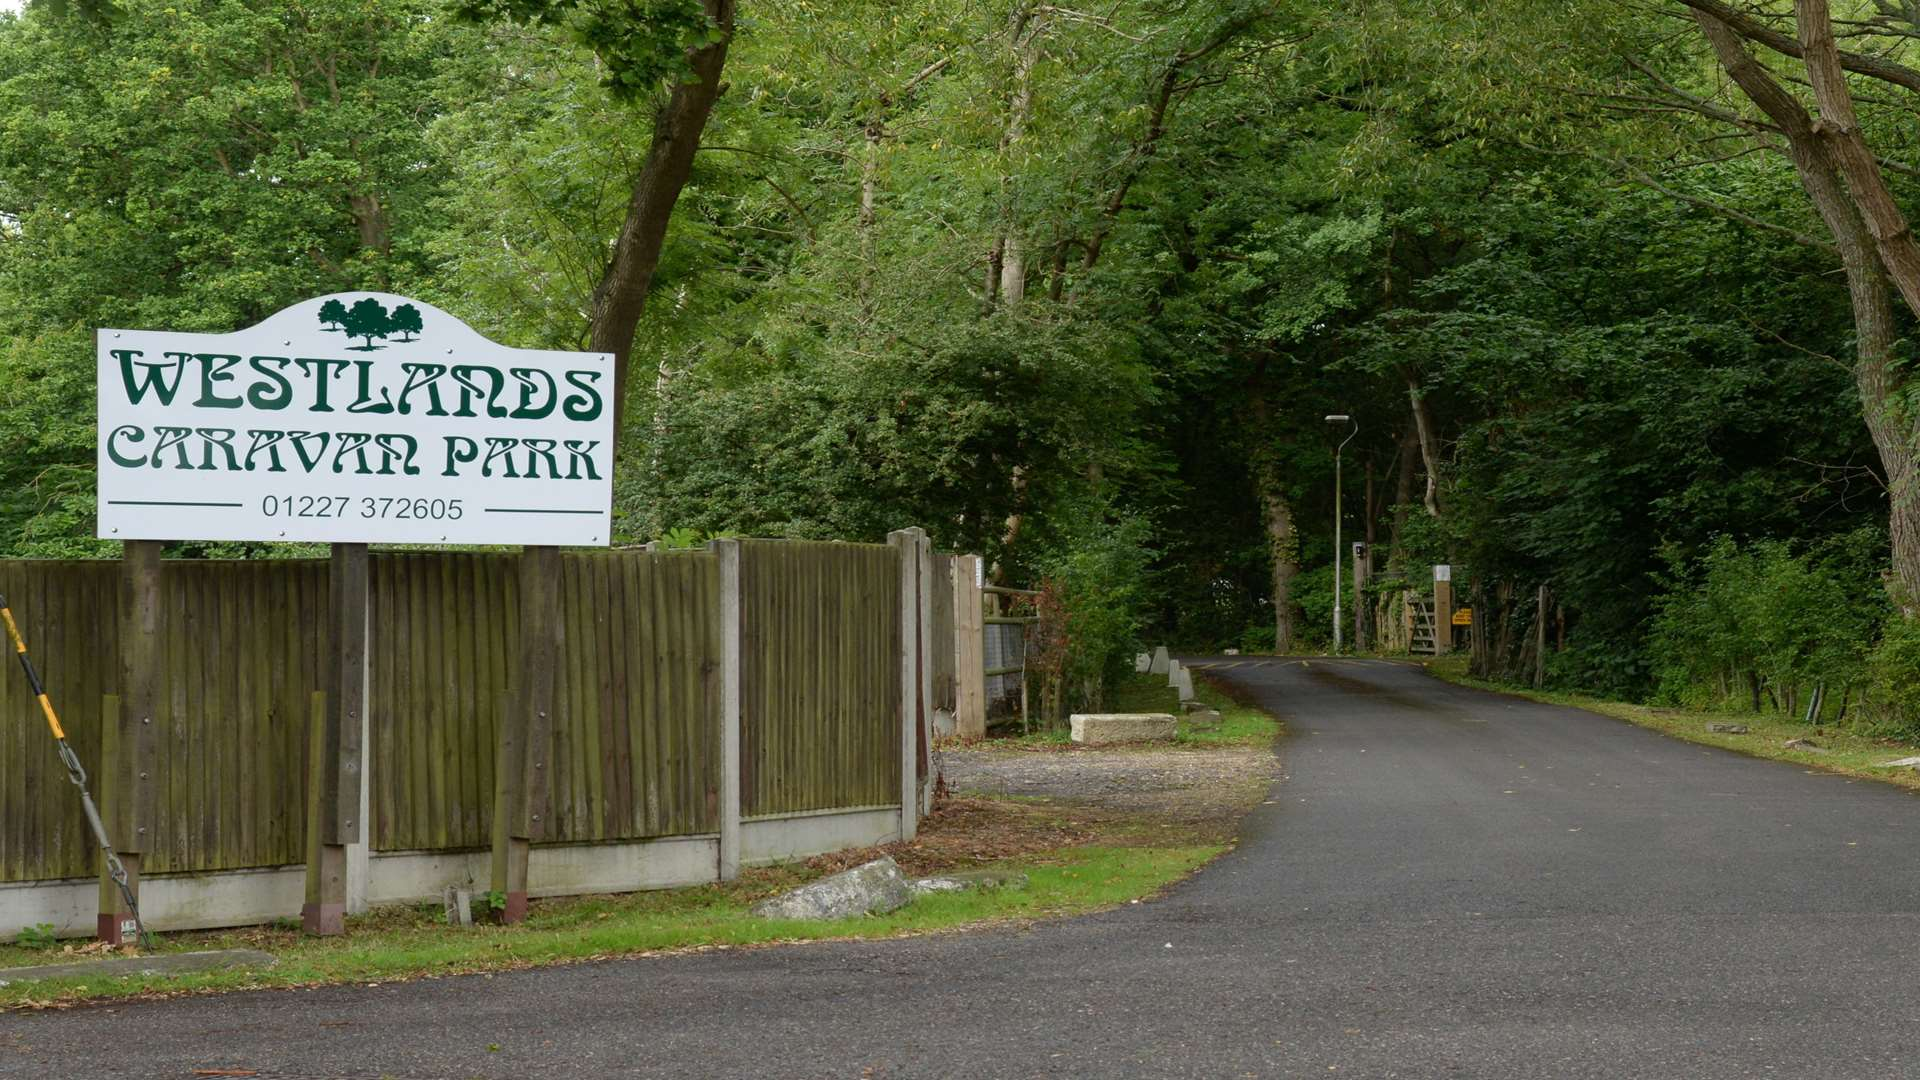 Westlands Caravan Park off Canterbury Road in Herne Common